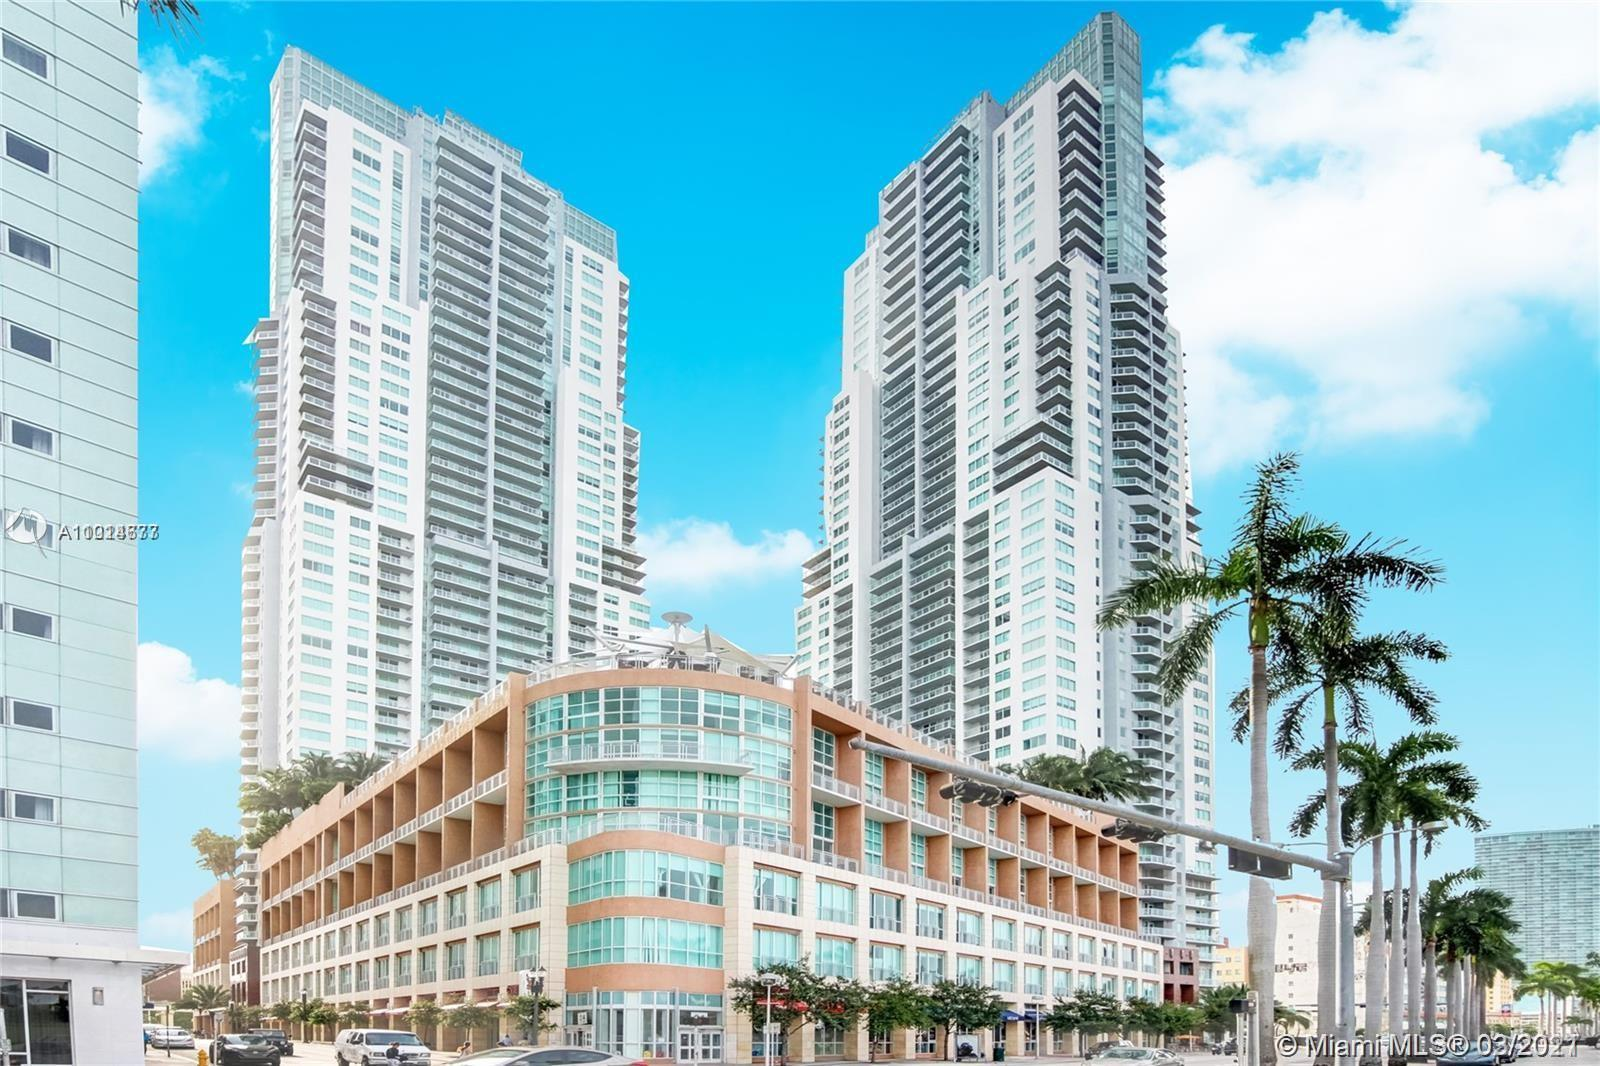 One of the most beautiful units, 2 bedroom, 2 baths,  floor to ceiling windows with ocean views of s